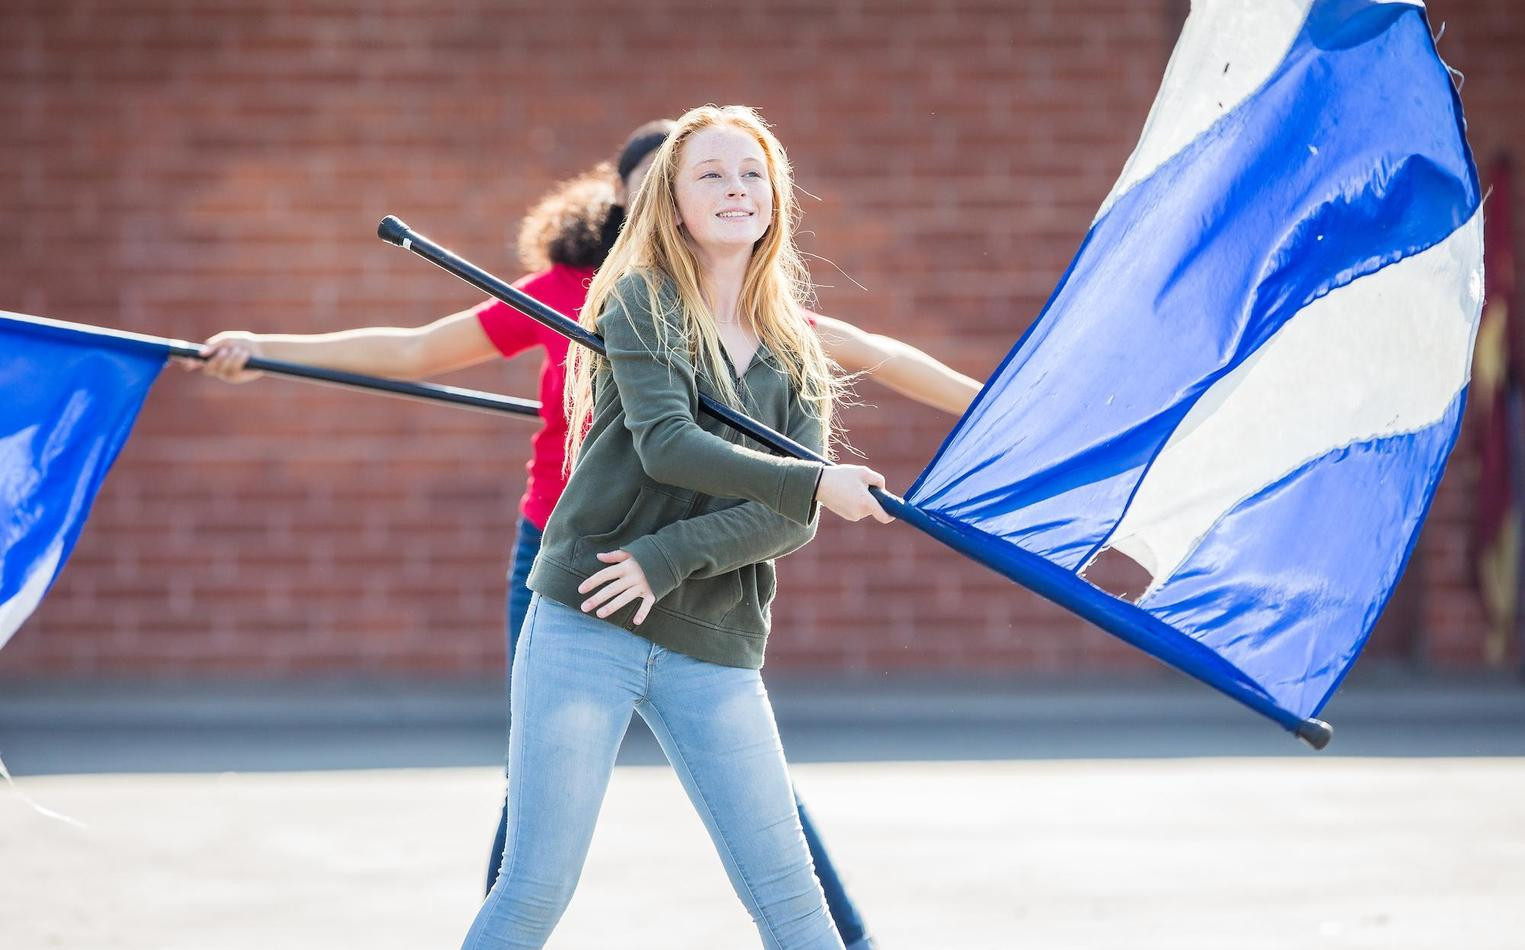 Student rehearsing her flag routine.